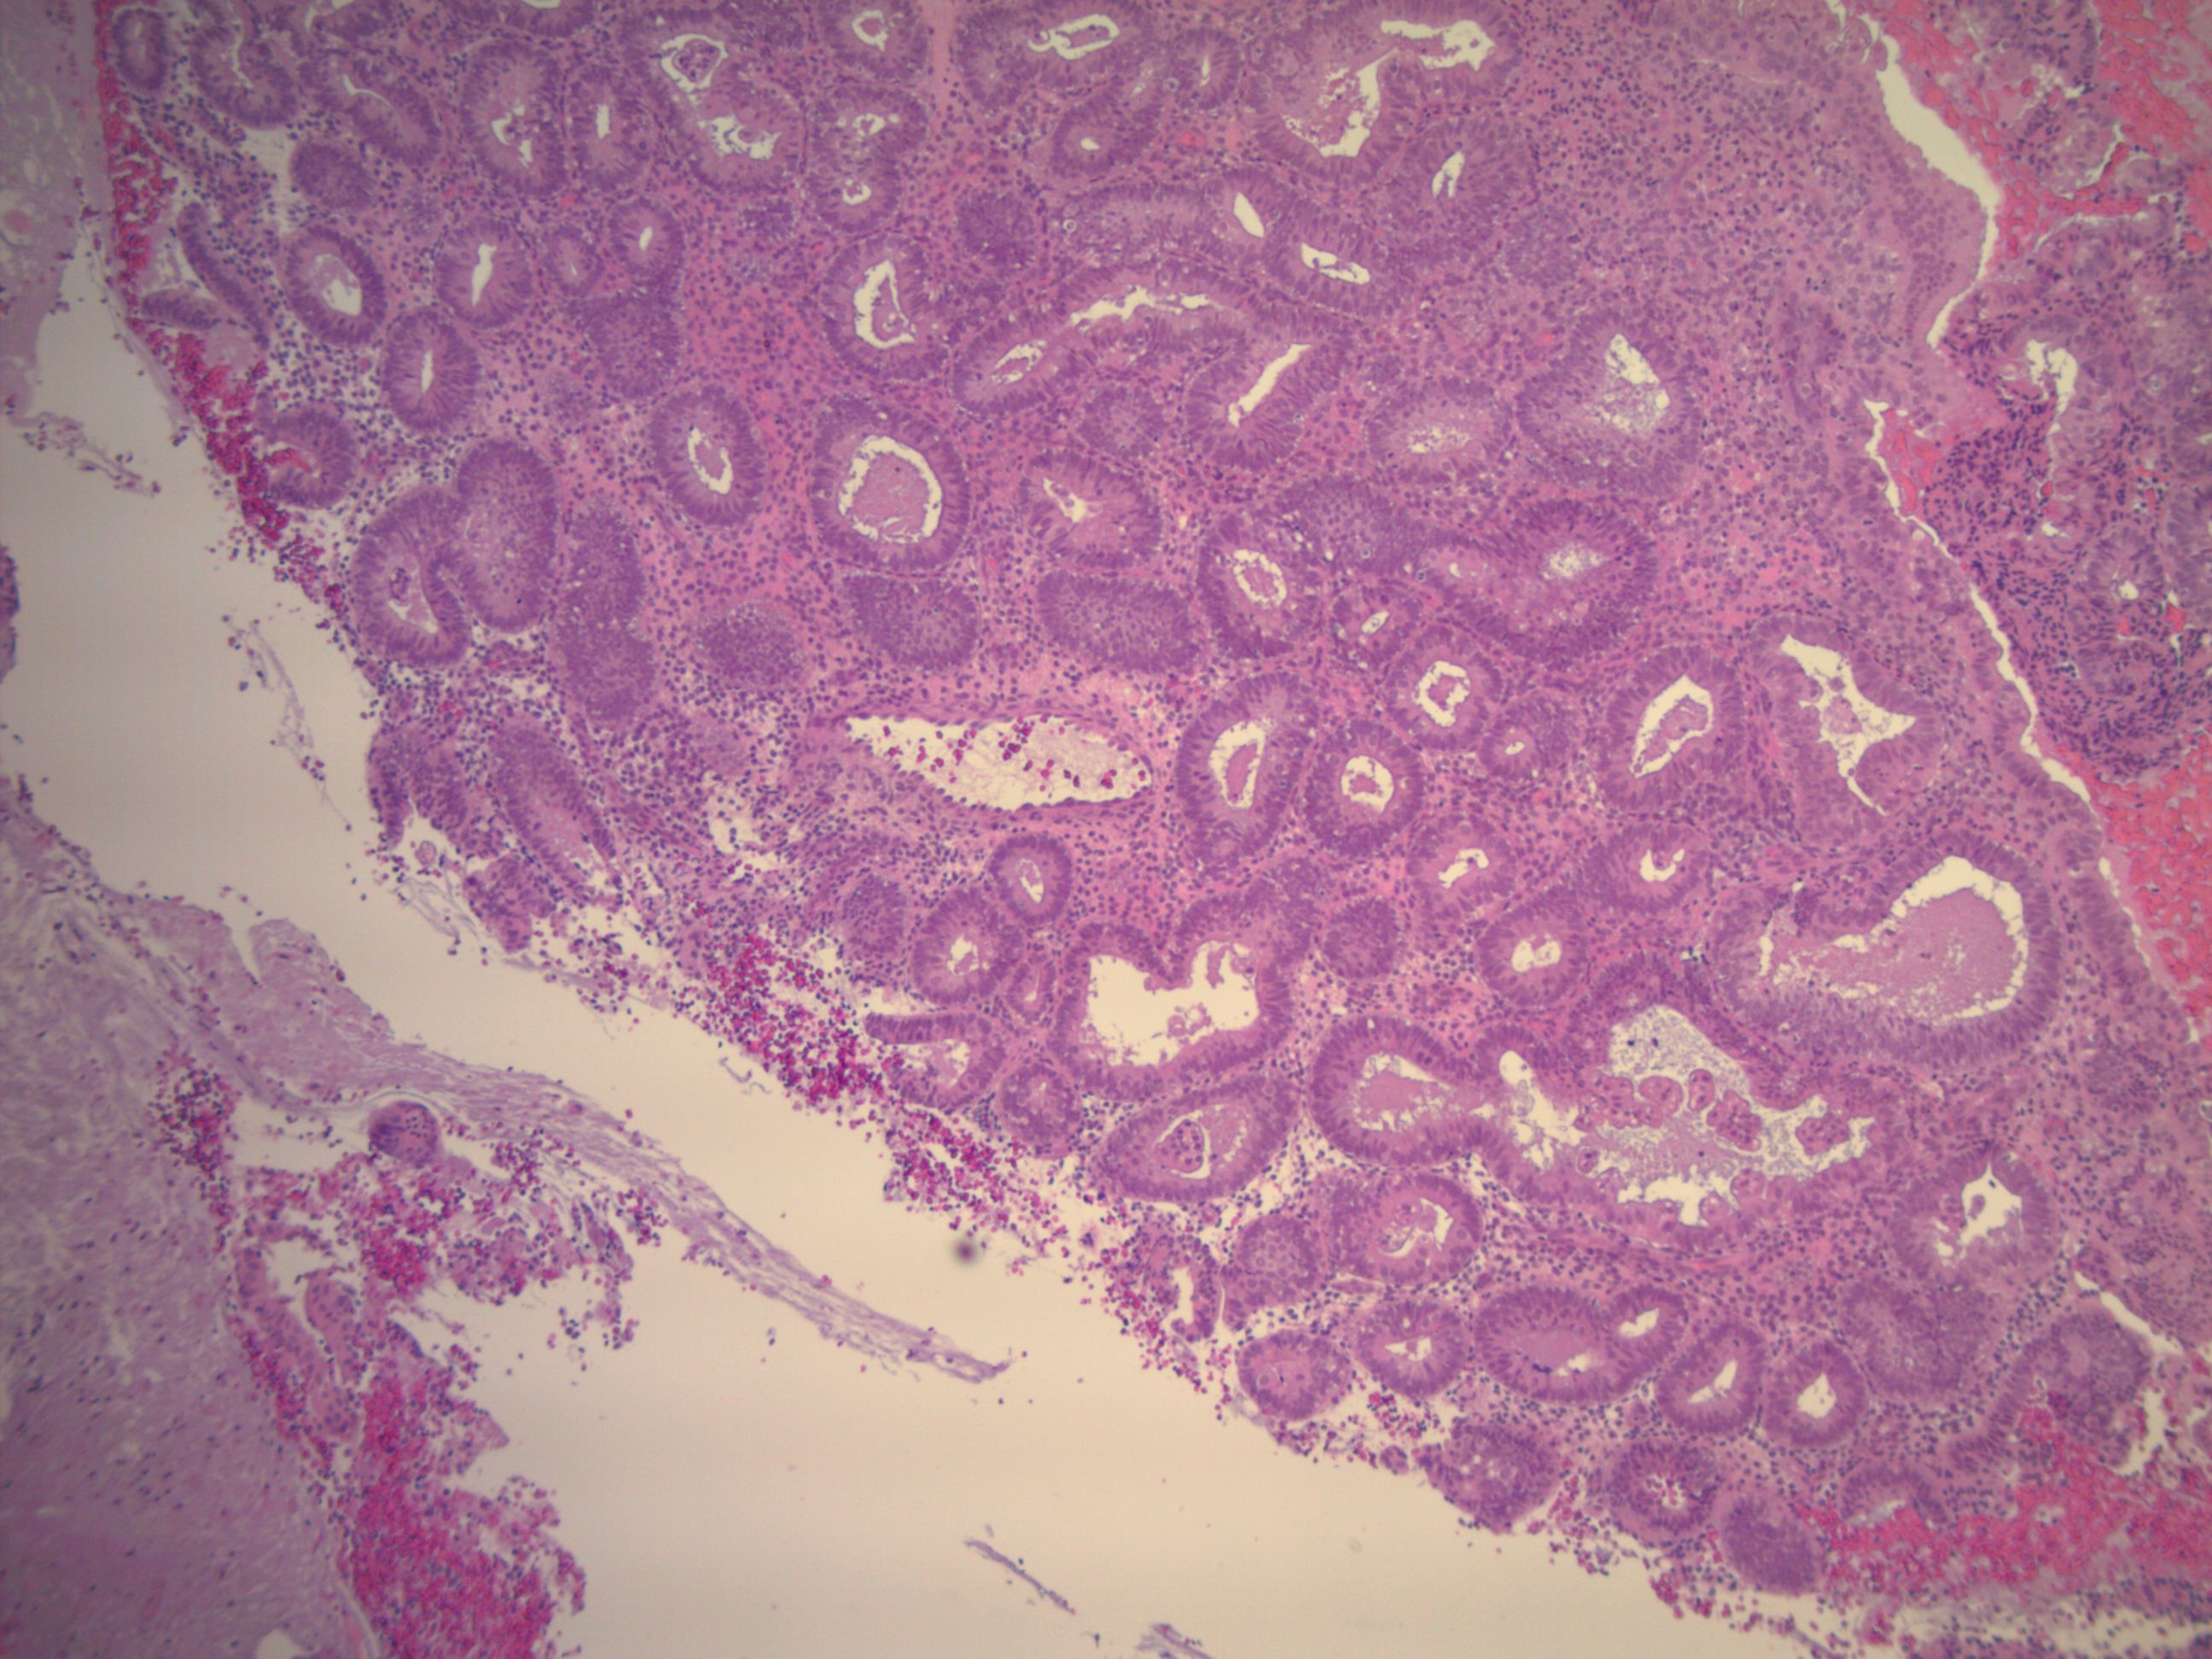 PAEC with complex hyperplasia and crowded glands with proliferative epithelium